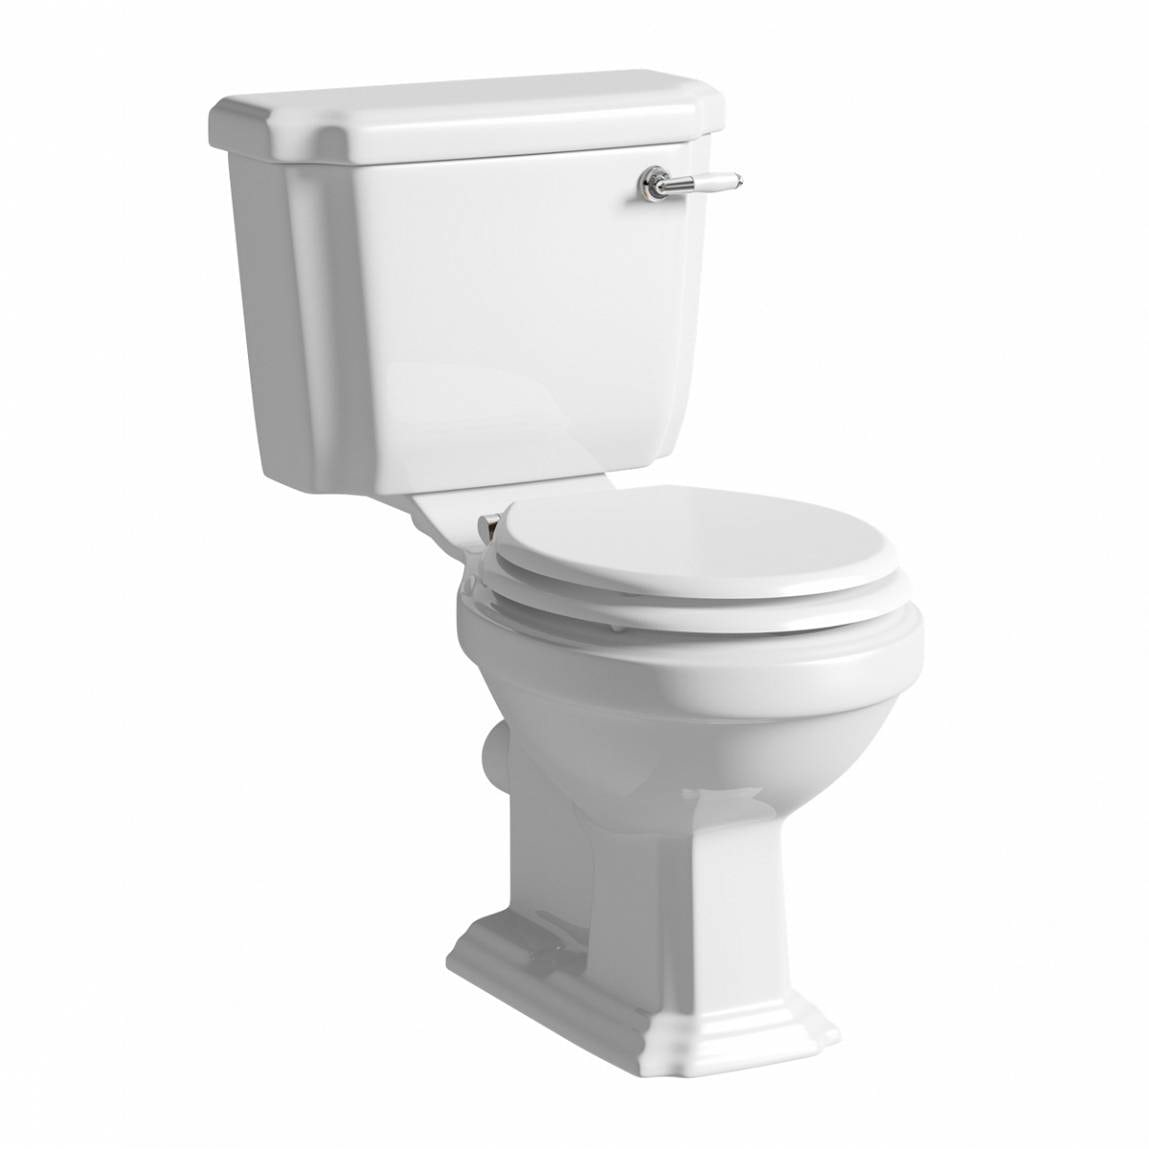 The Bath Co. Dulwich close coupled toilet with soft close wooden toilet seat white with pan connector